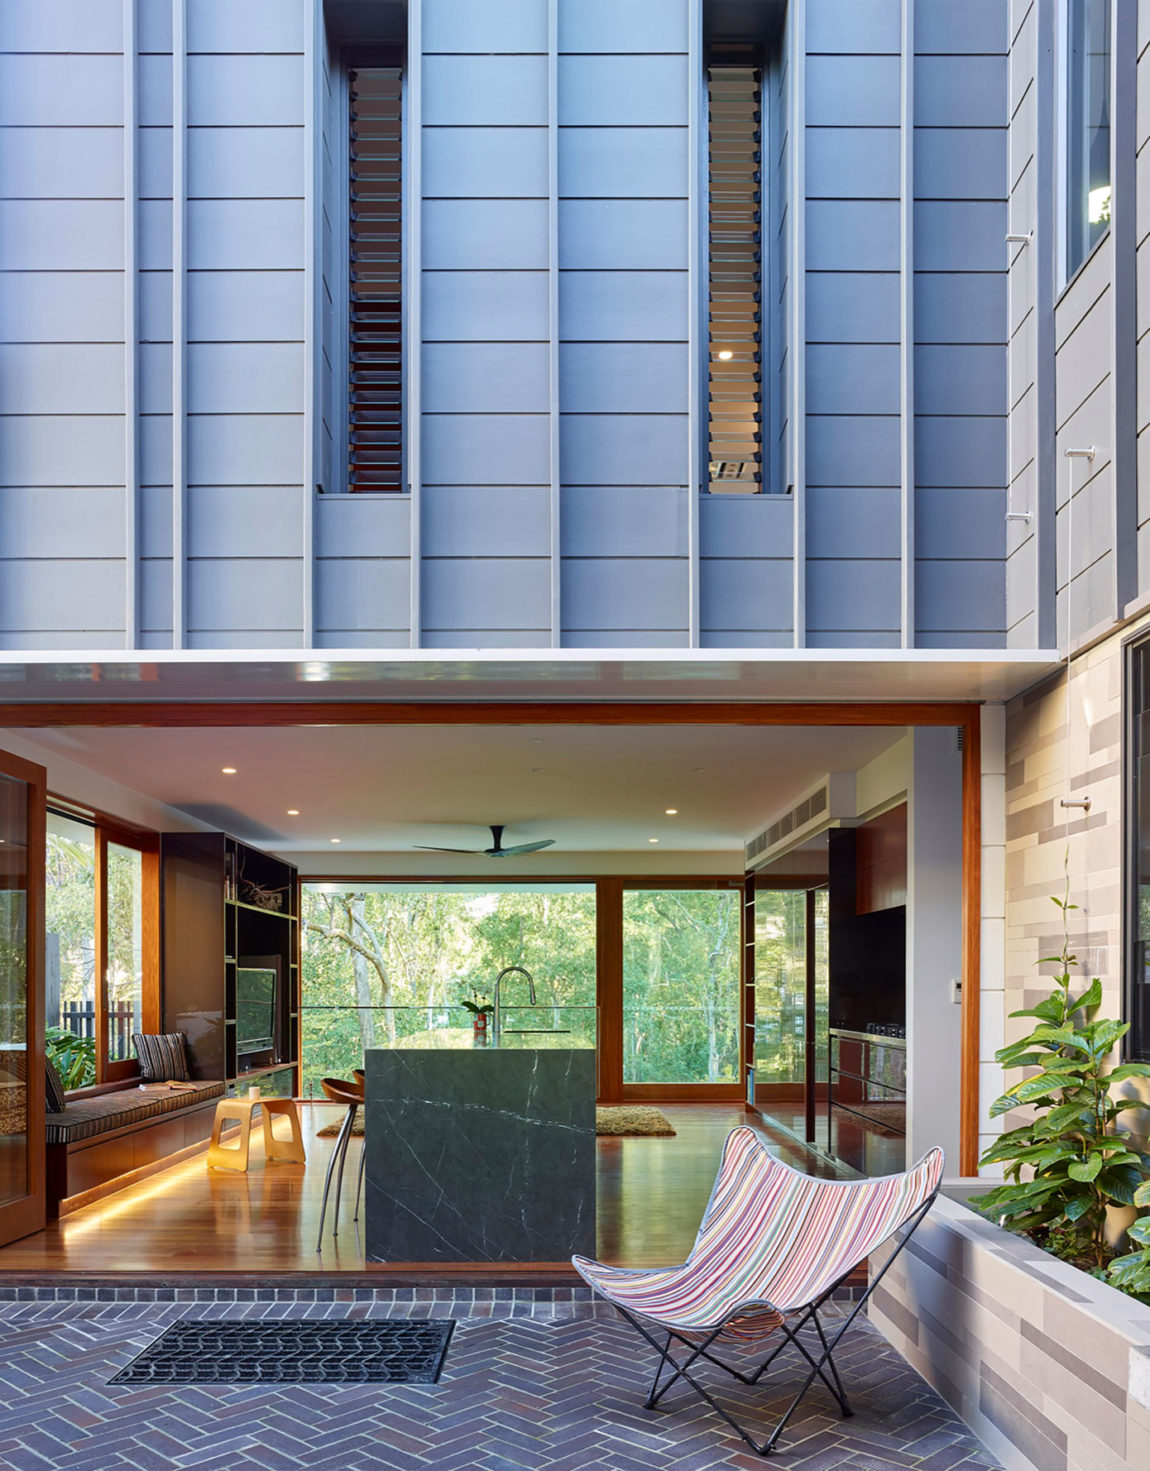 Fifth Avenue by O'Neill Architecture (5)